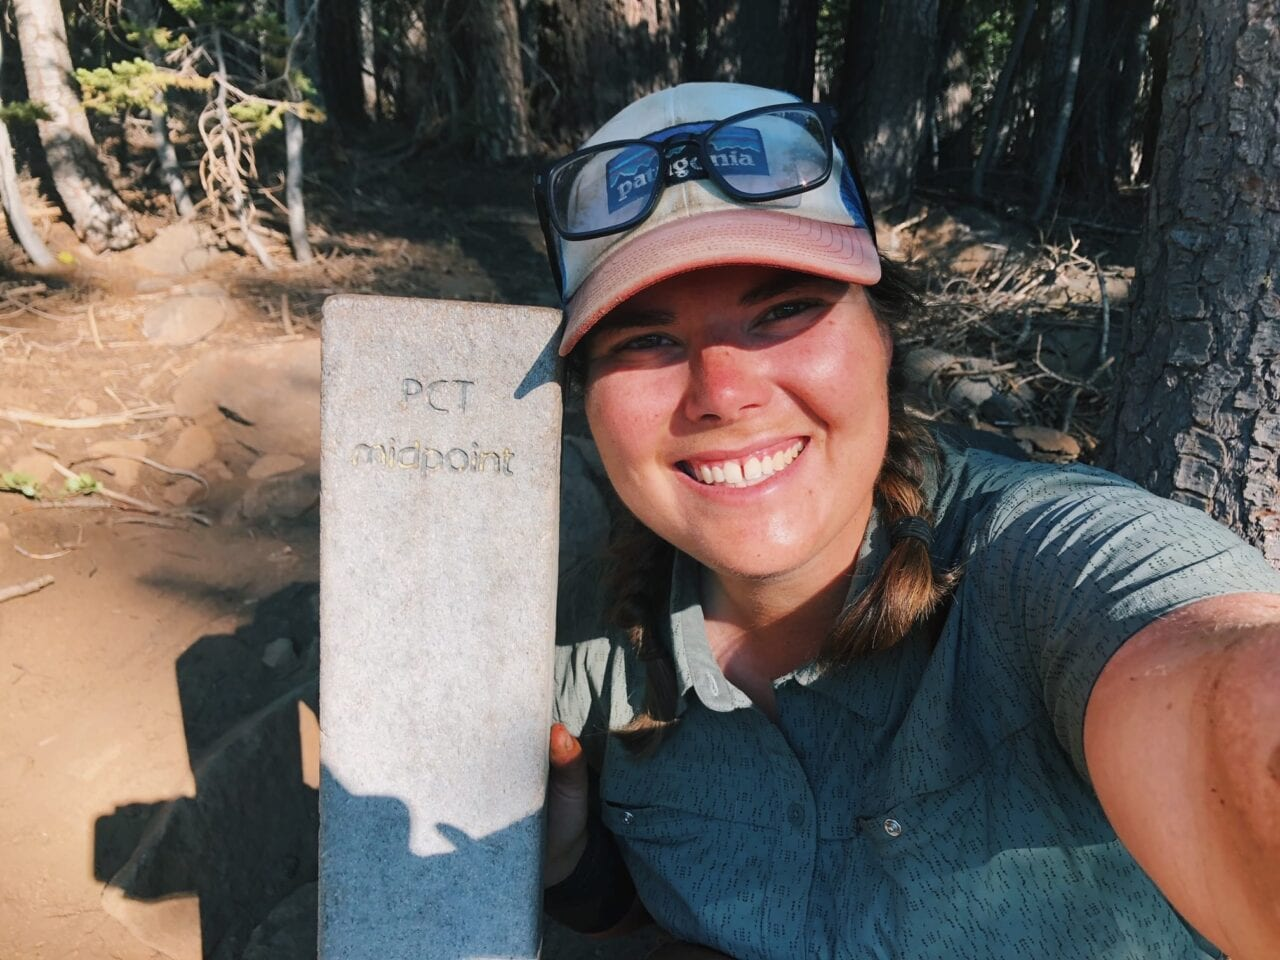 A woman hiker smiling next to a PCT trail sign post.